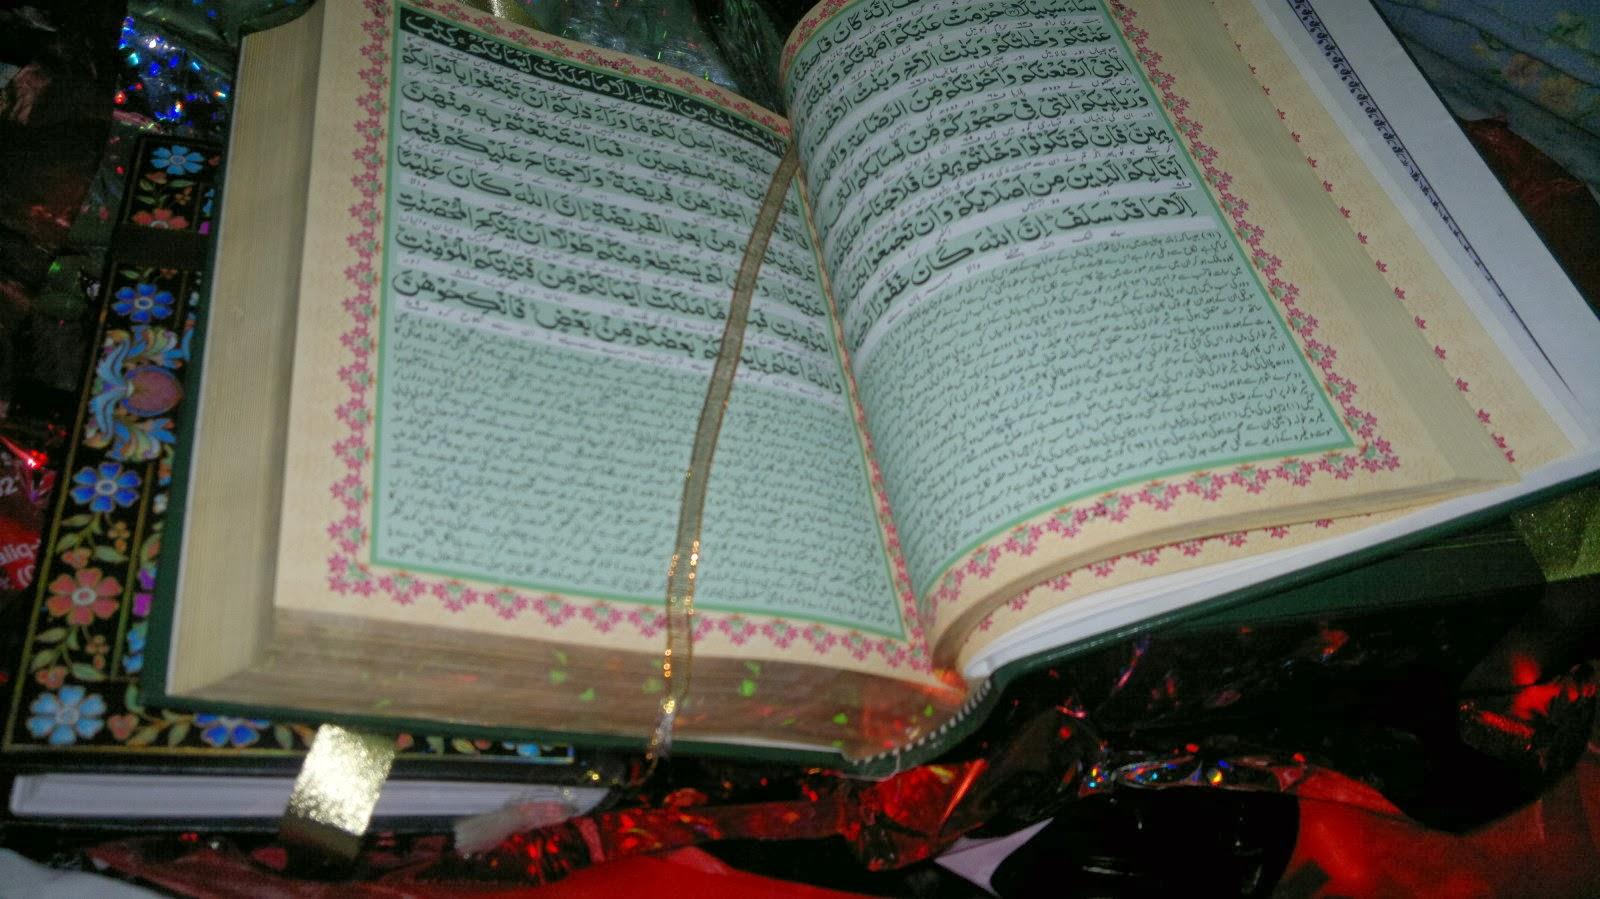 quran wallpaper download quran wallpapers quraan karim image quranQuran Wallpaper Free Download